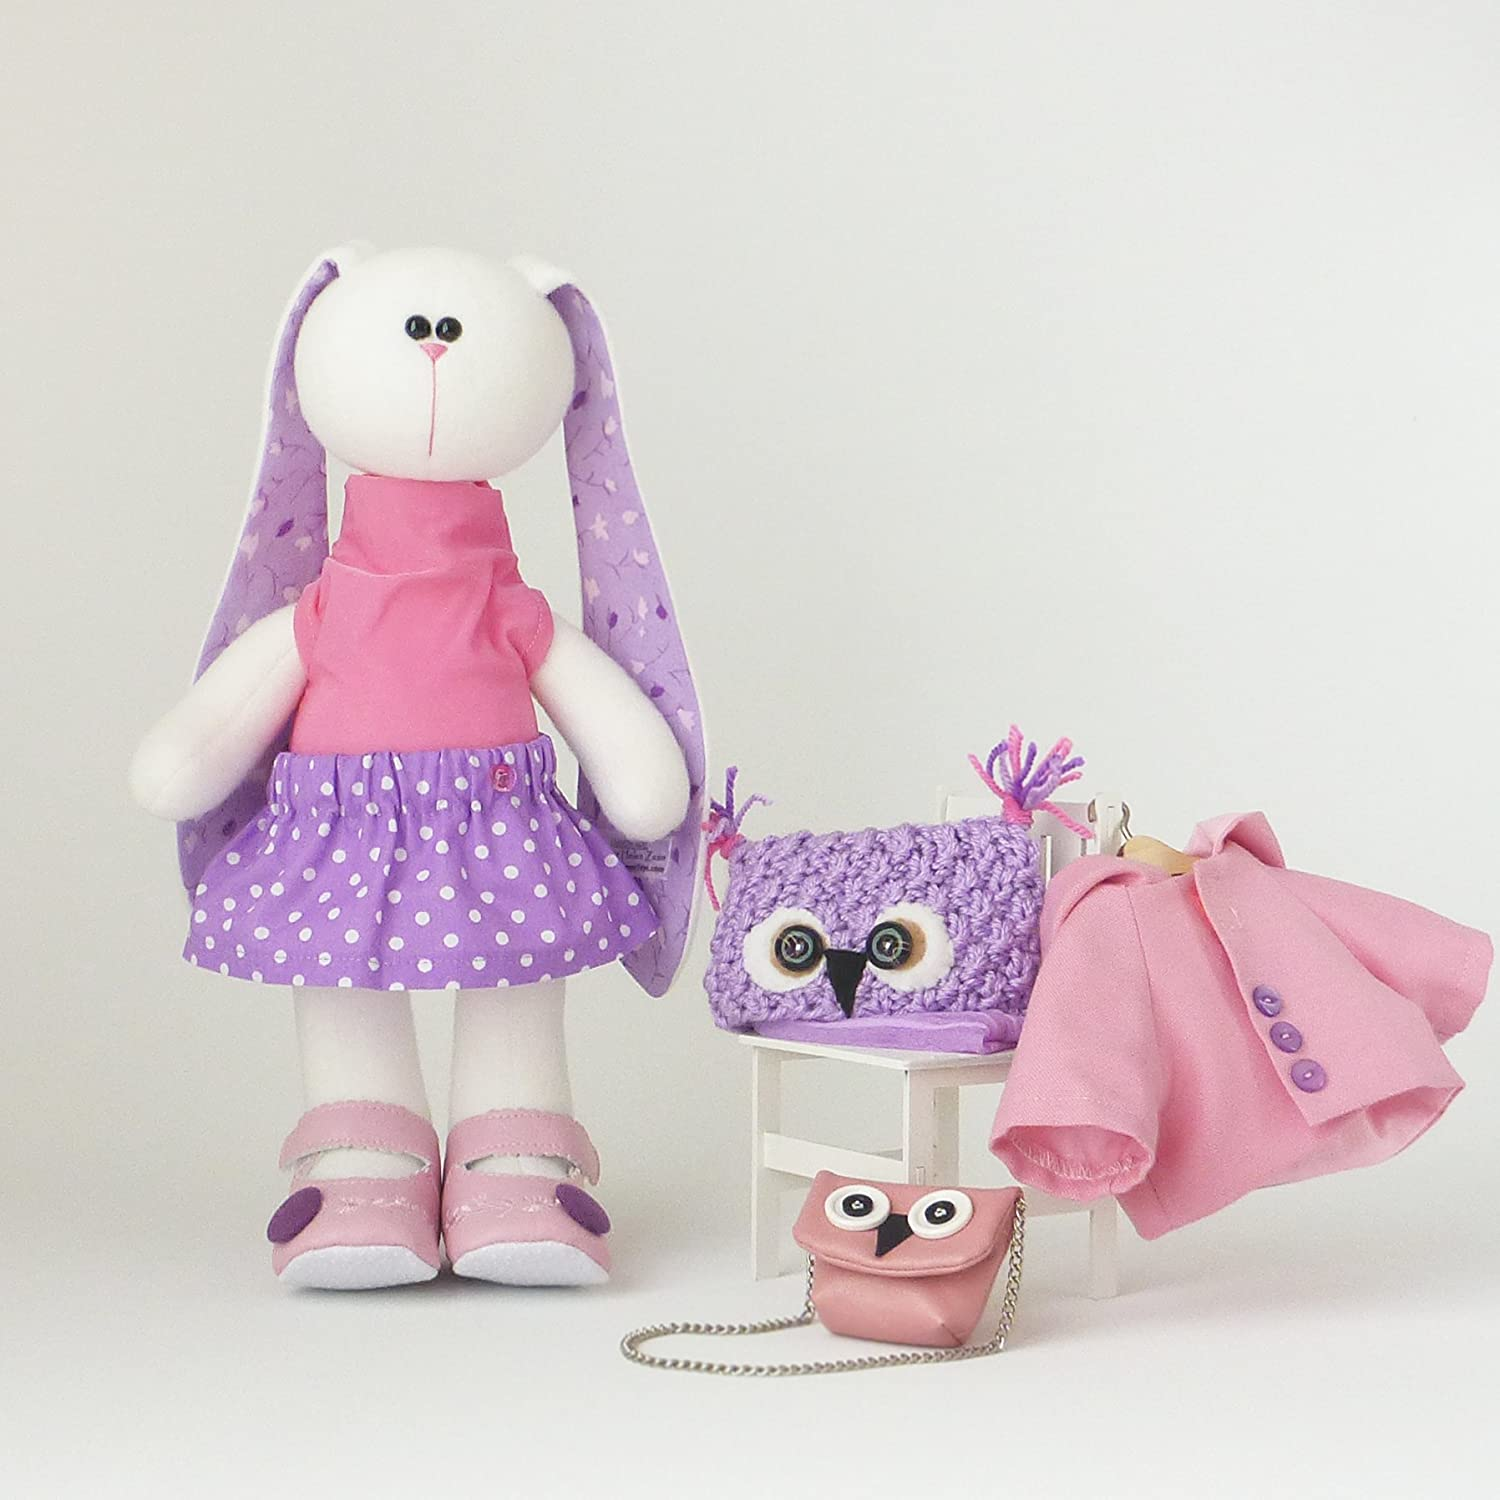 Extra set of clothes for girl rabbit doll 14.5 clothes fits for toys ZuzuHappyToys